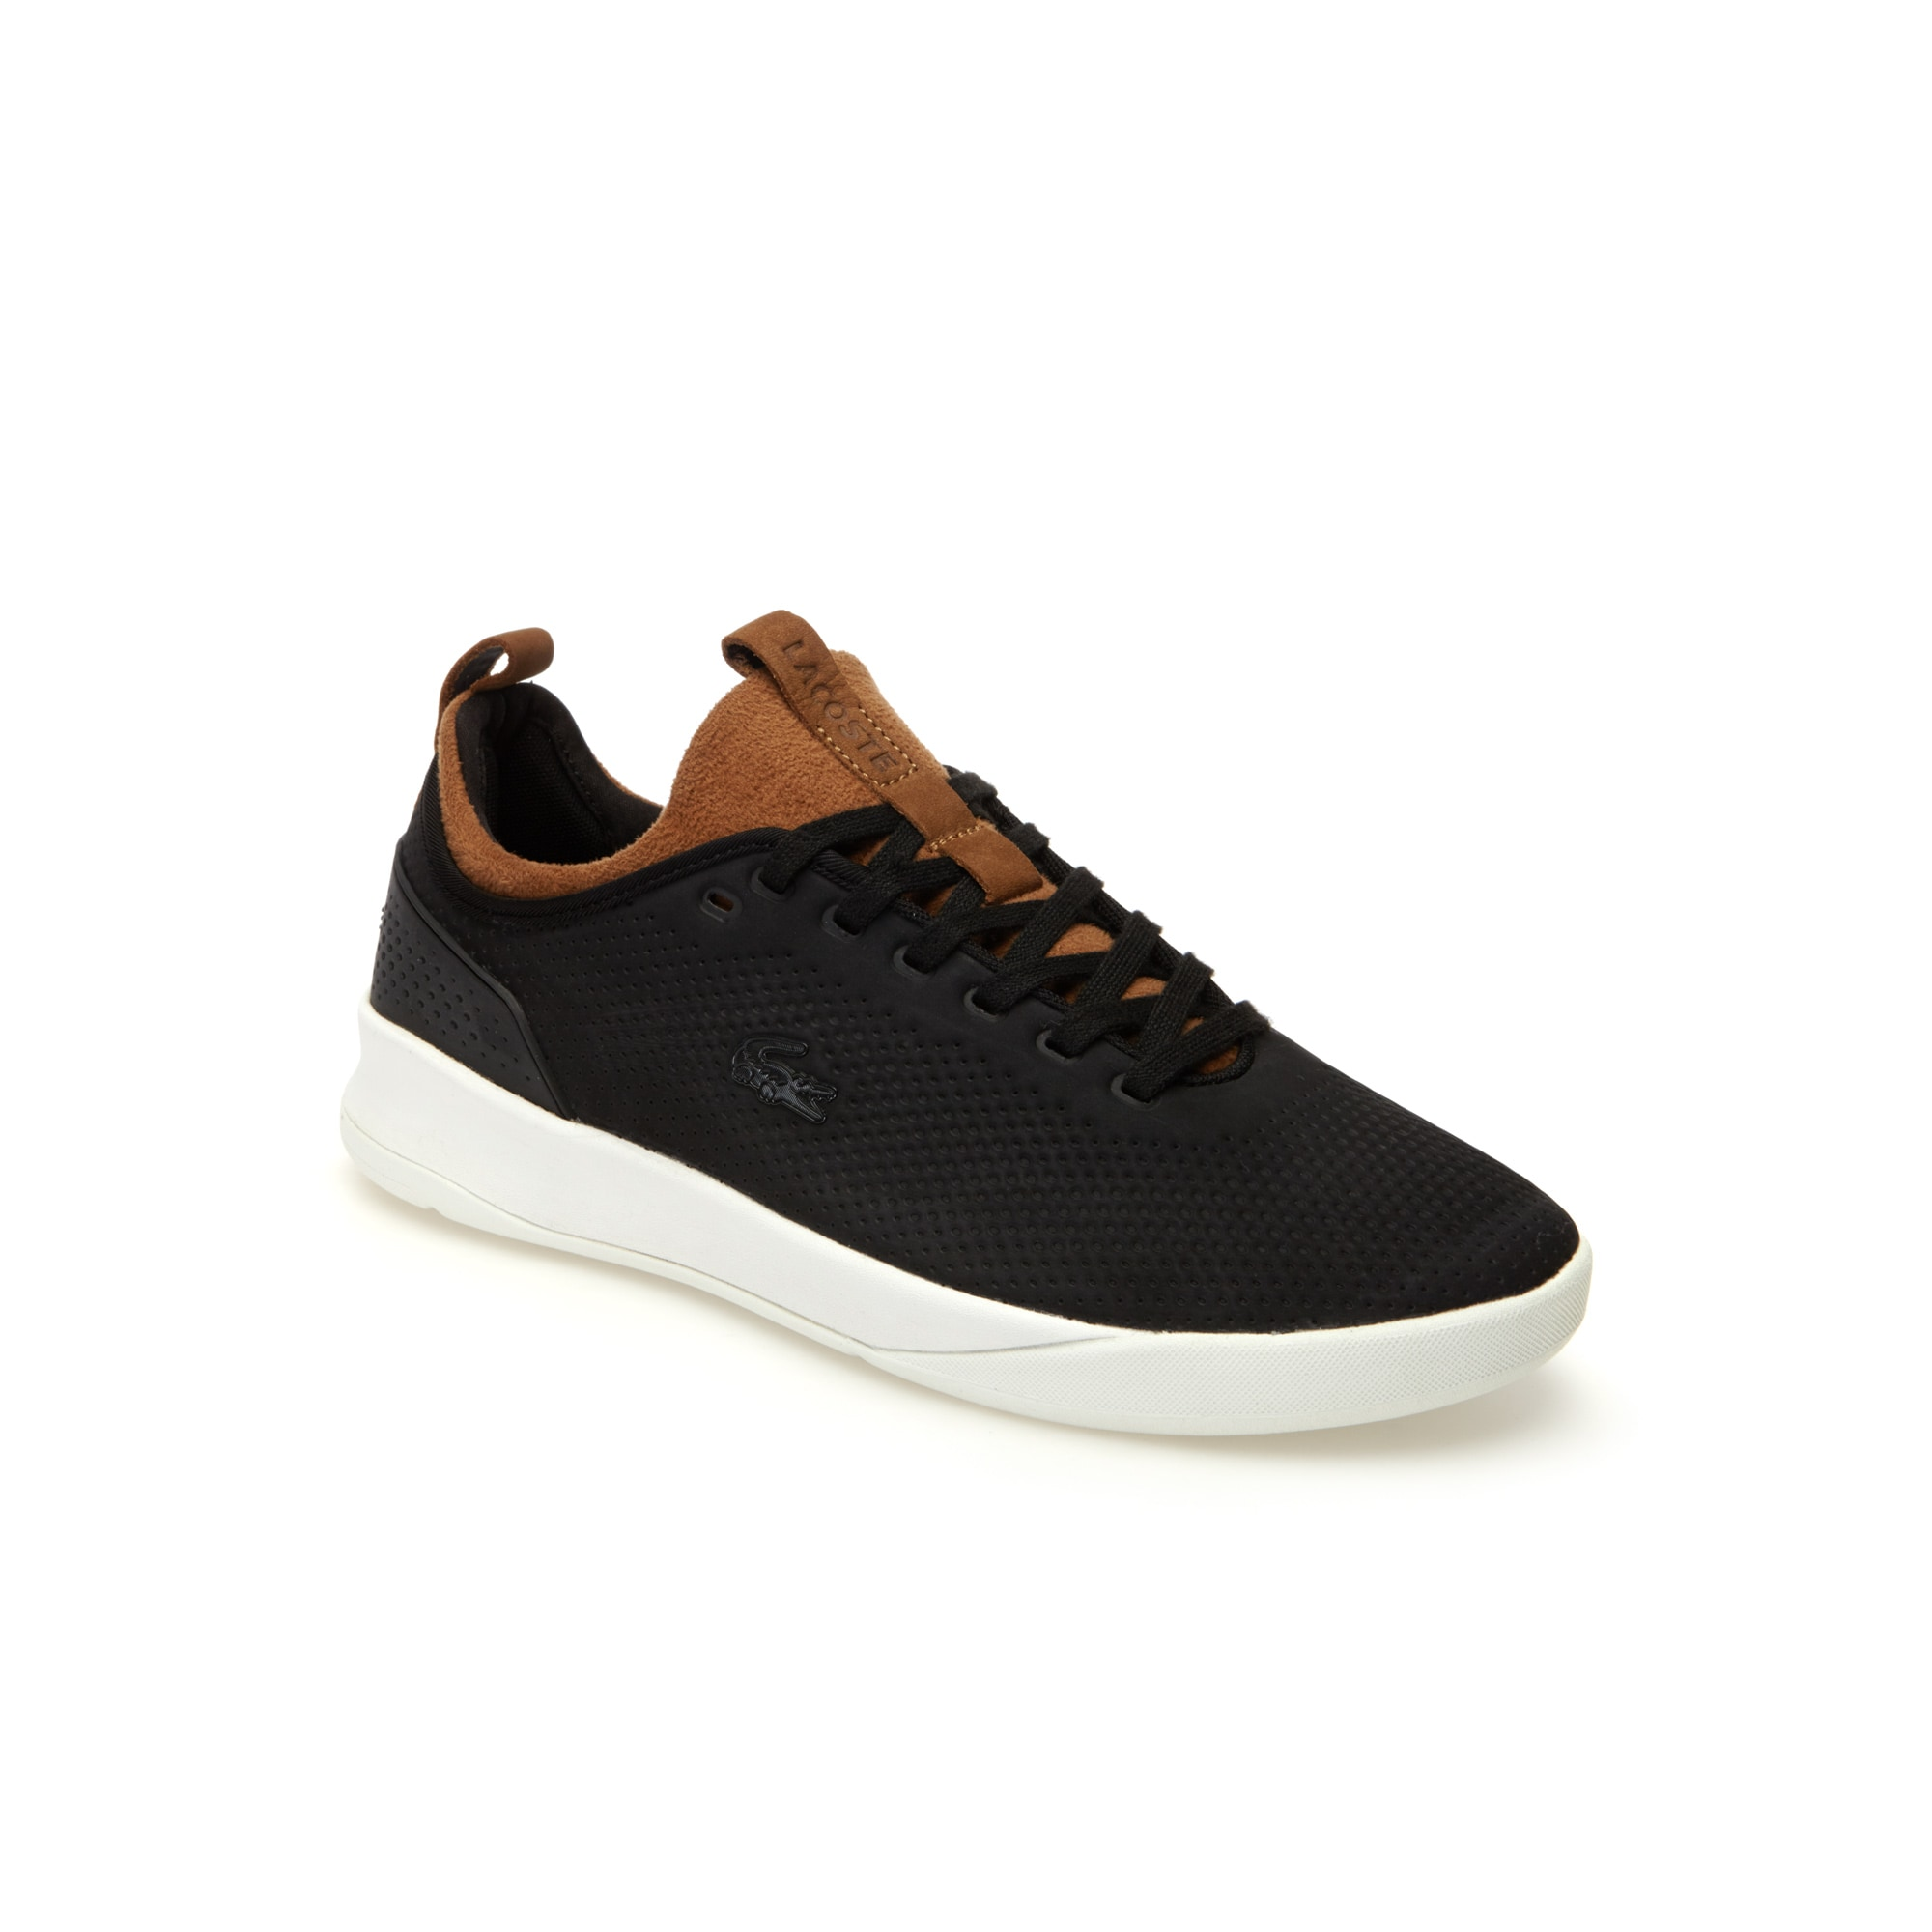 Men's LT Spirit SPORT 2.0 Synthetic and Textile Trainers